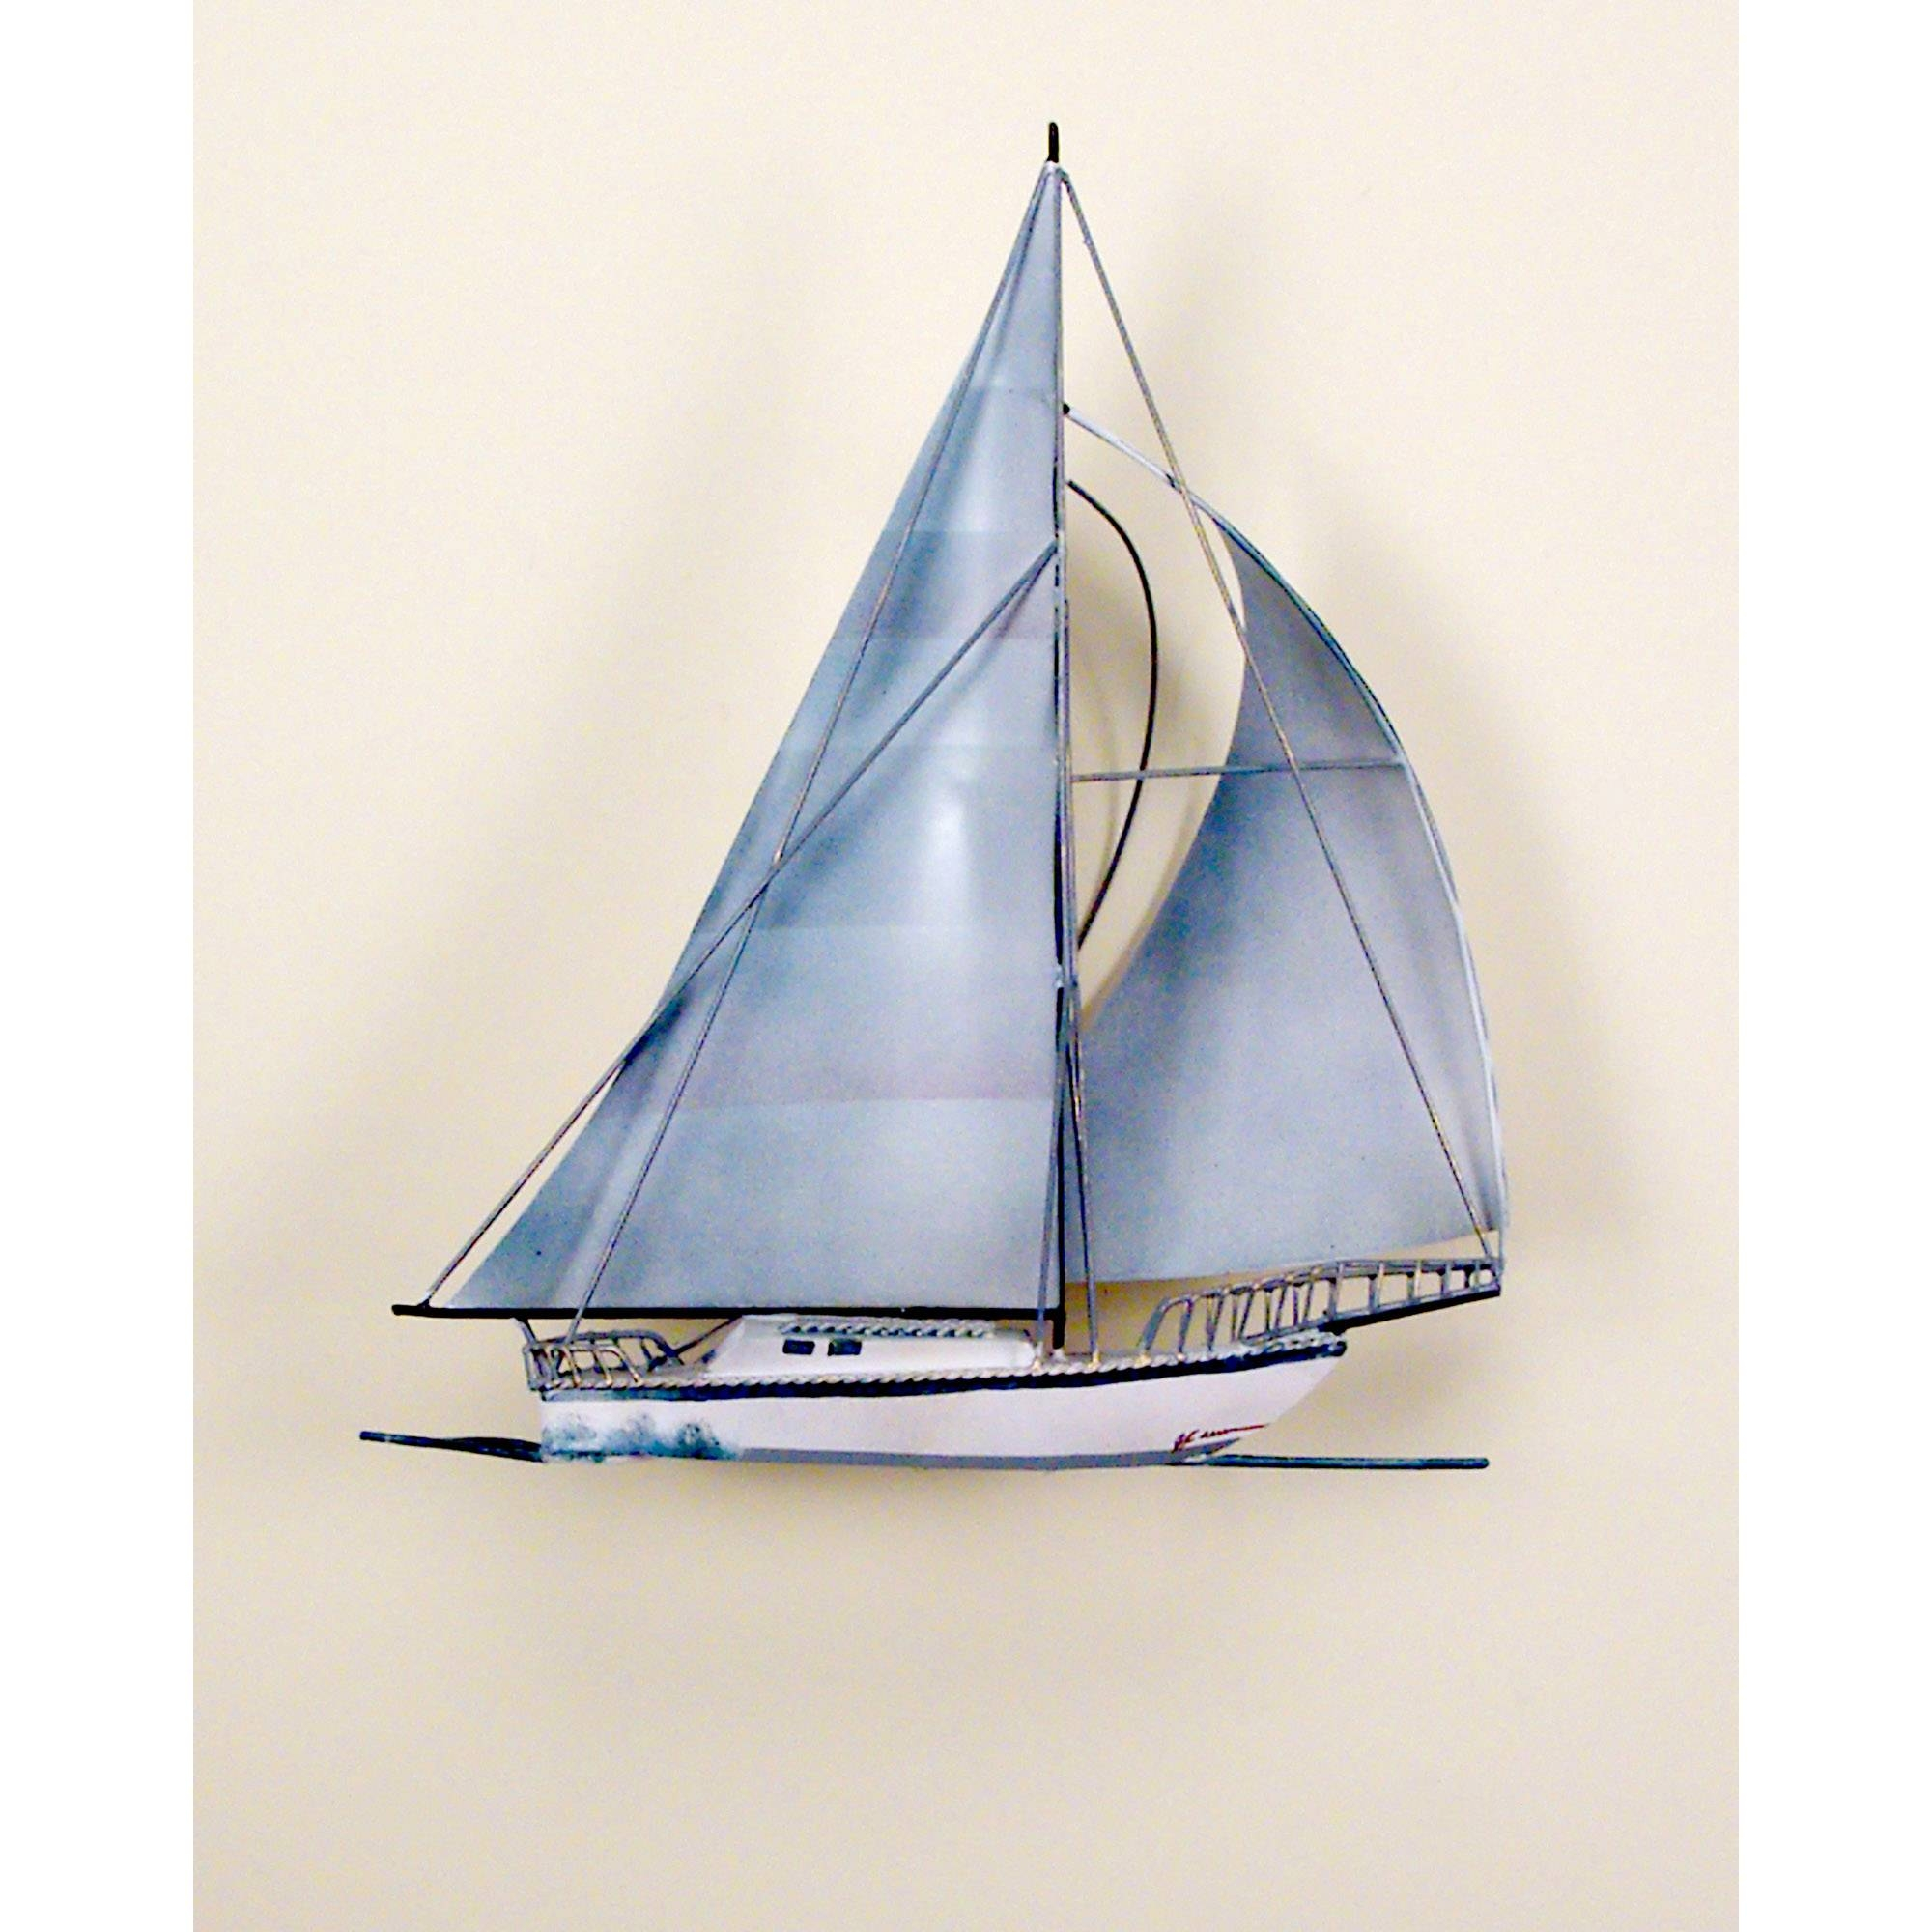 Windjamer Sailboat, Single, Ocean, Boat, Nautical, Sailing With Regard To 2017 Metal Sailboat Wall Art (View 30 of 30)